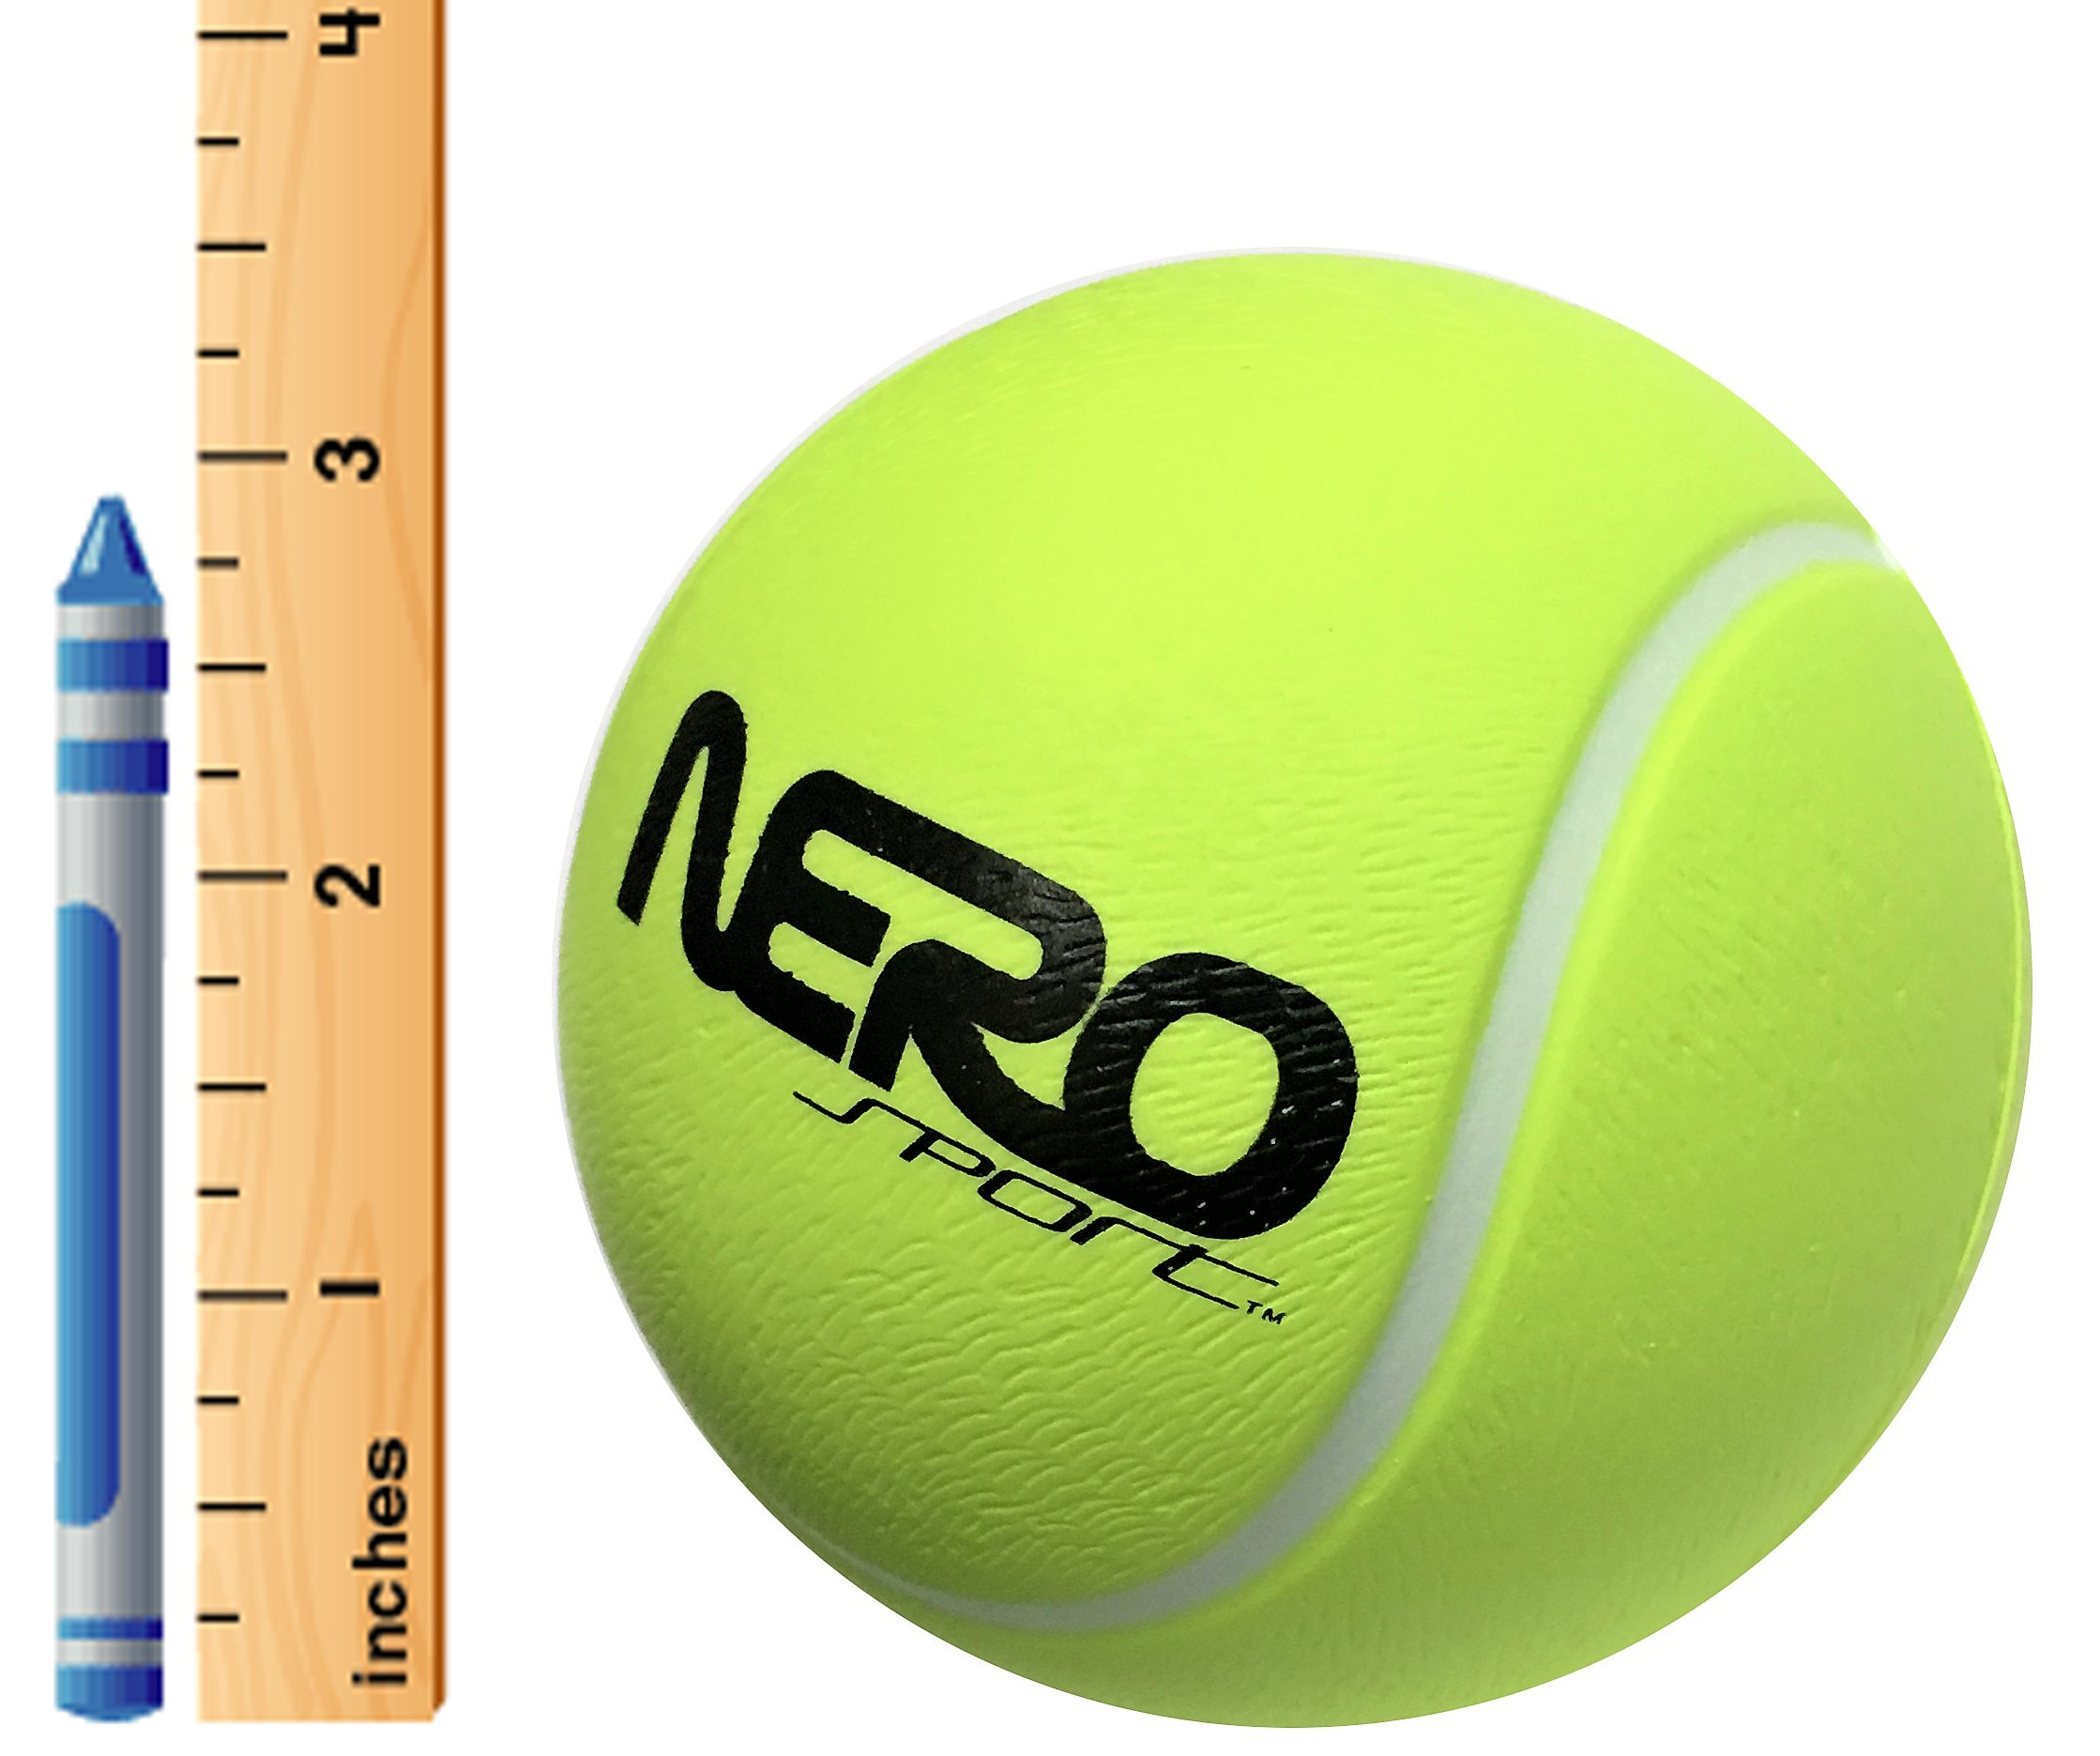 Nero NS200 High Bounce Rubber Tennis Ball 3.5'' Training Style Let Them Play Outside Great for Streets Park Back Yard Playground Tennis Practice Agility Ball Wholesale Bulk Gifts (Green Tennis)